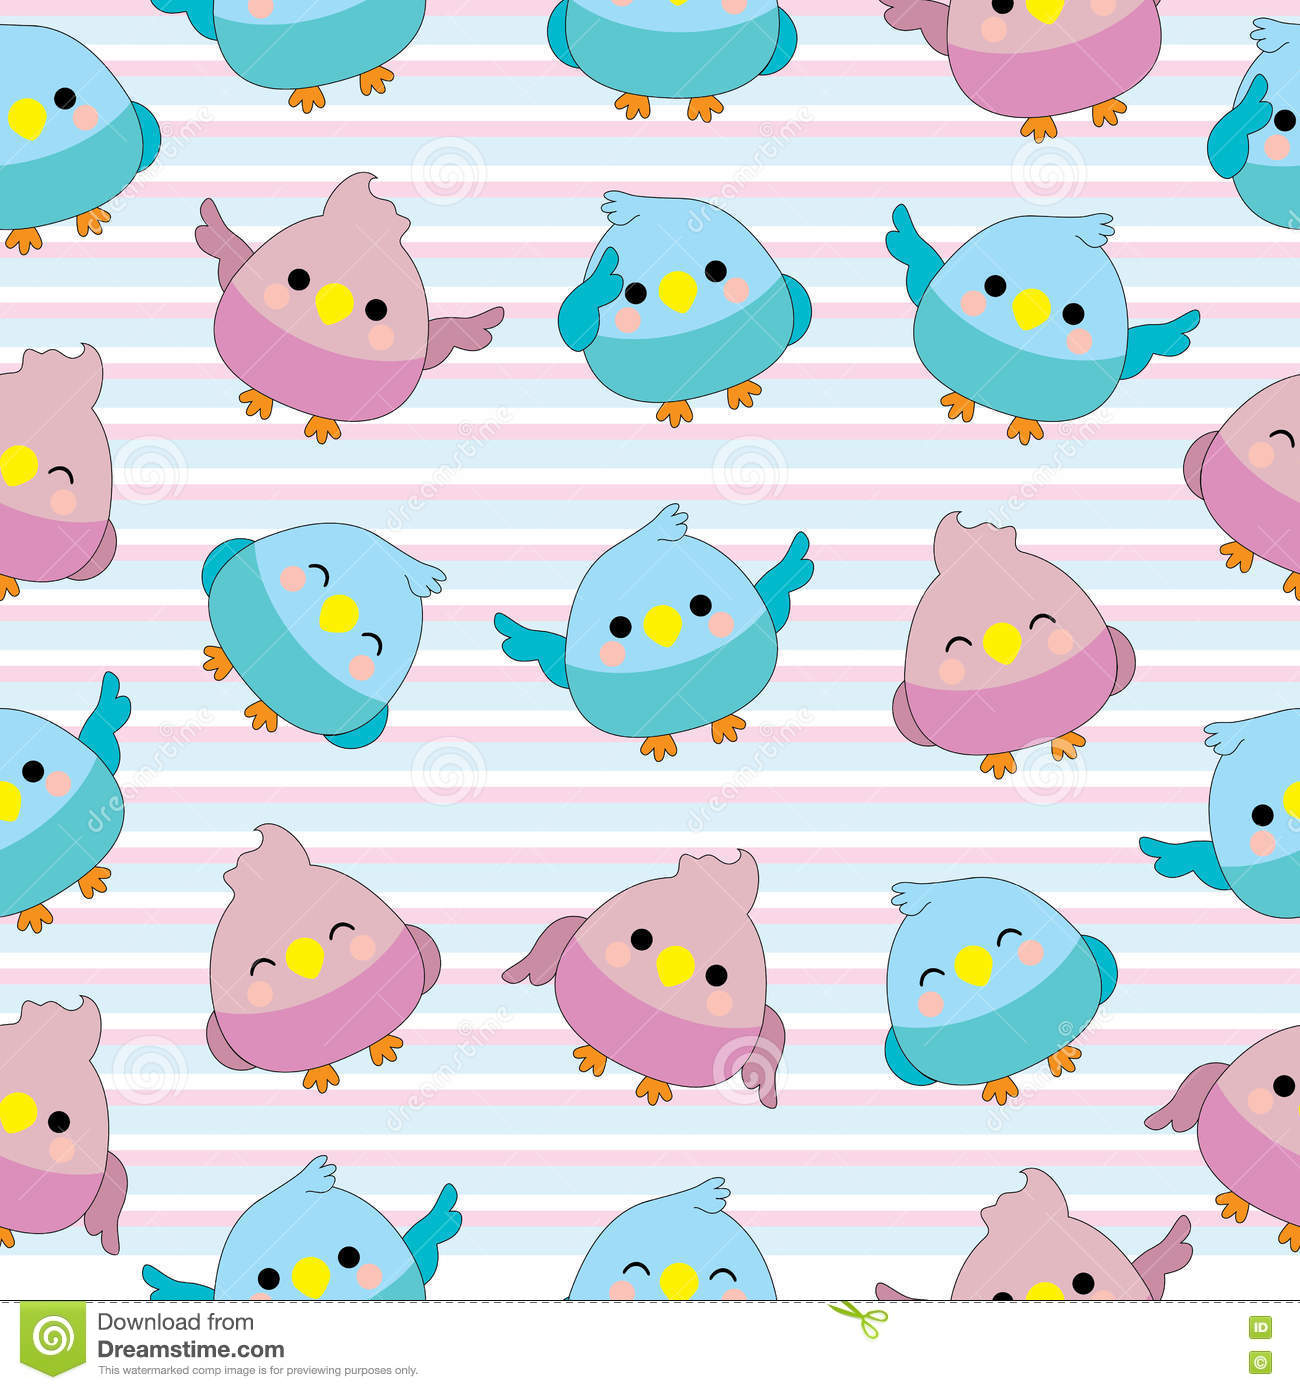 Seamless Background Of Baby Shower Illustration With Cute Baby Birds